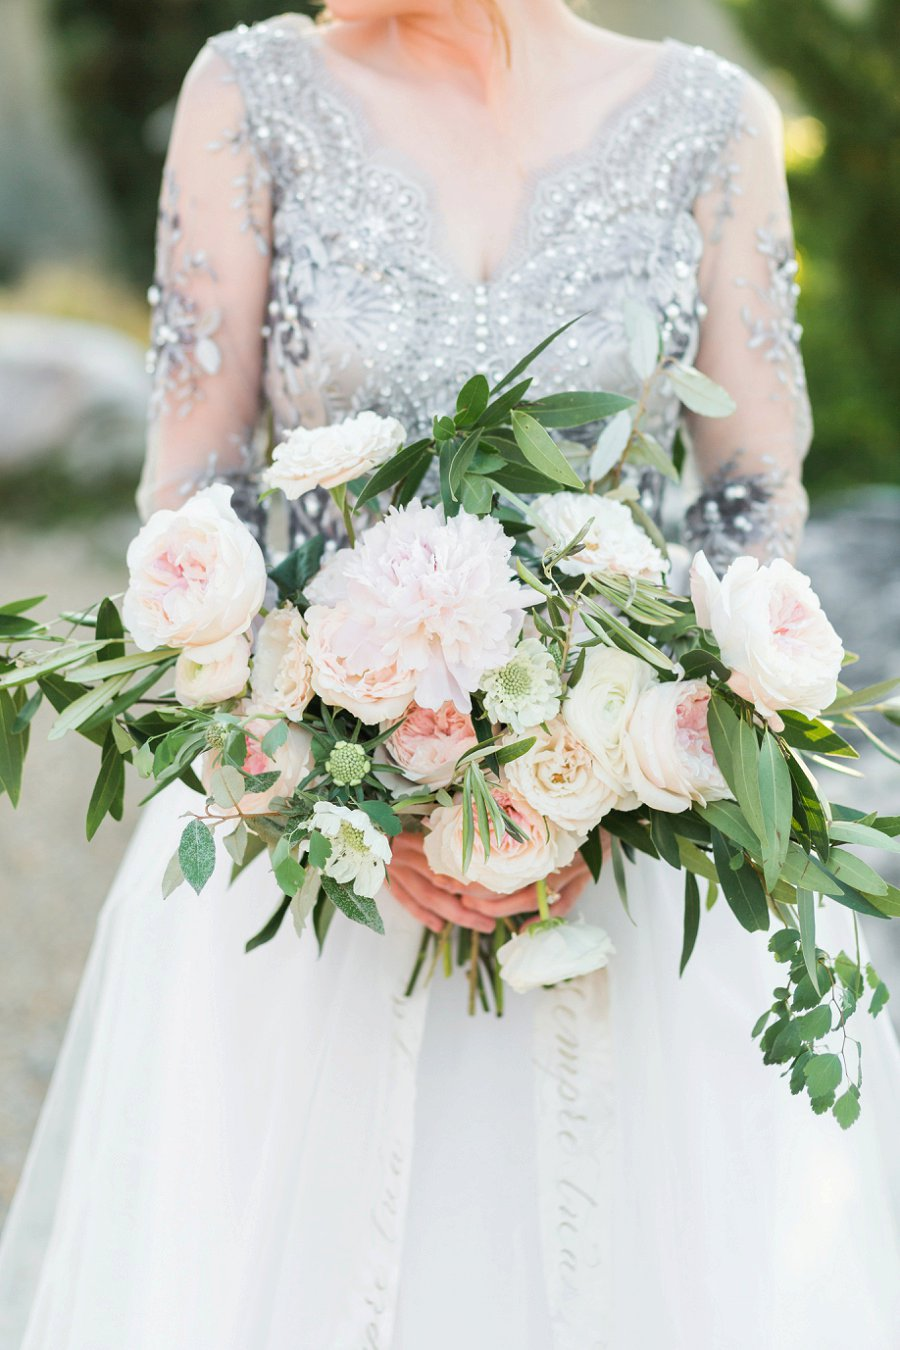 Romantic Grey Italian Inspired Wedding Ideas | Every Last Detail